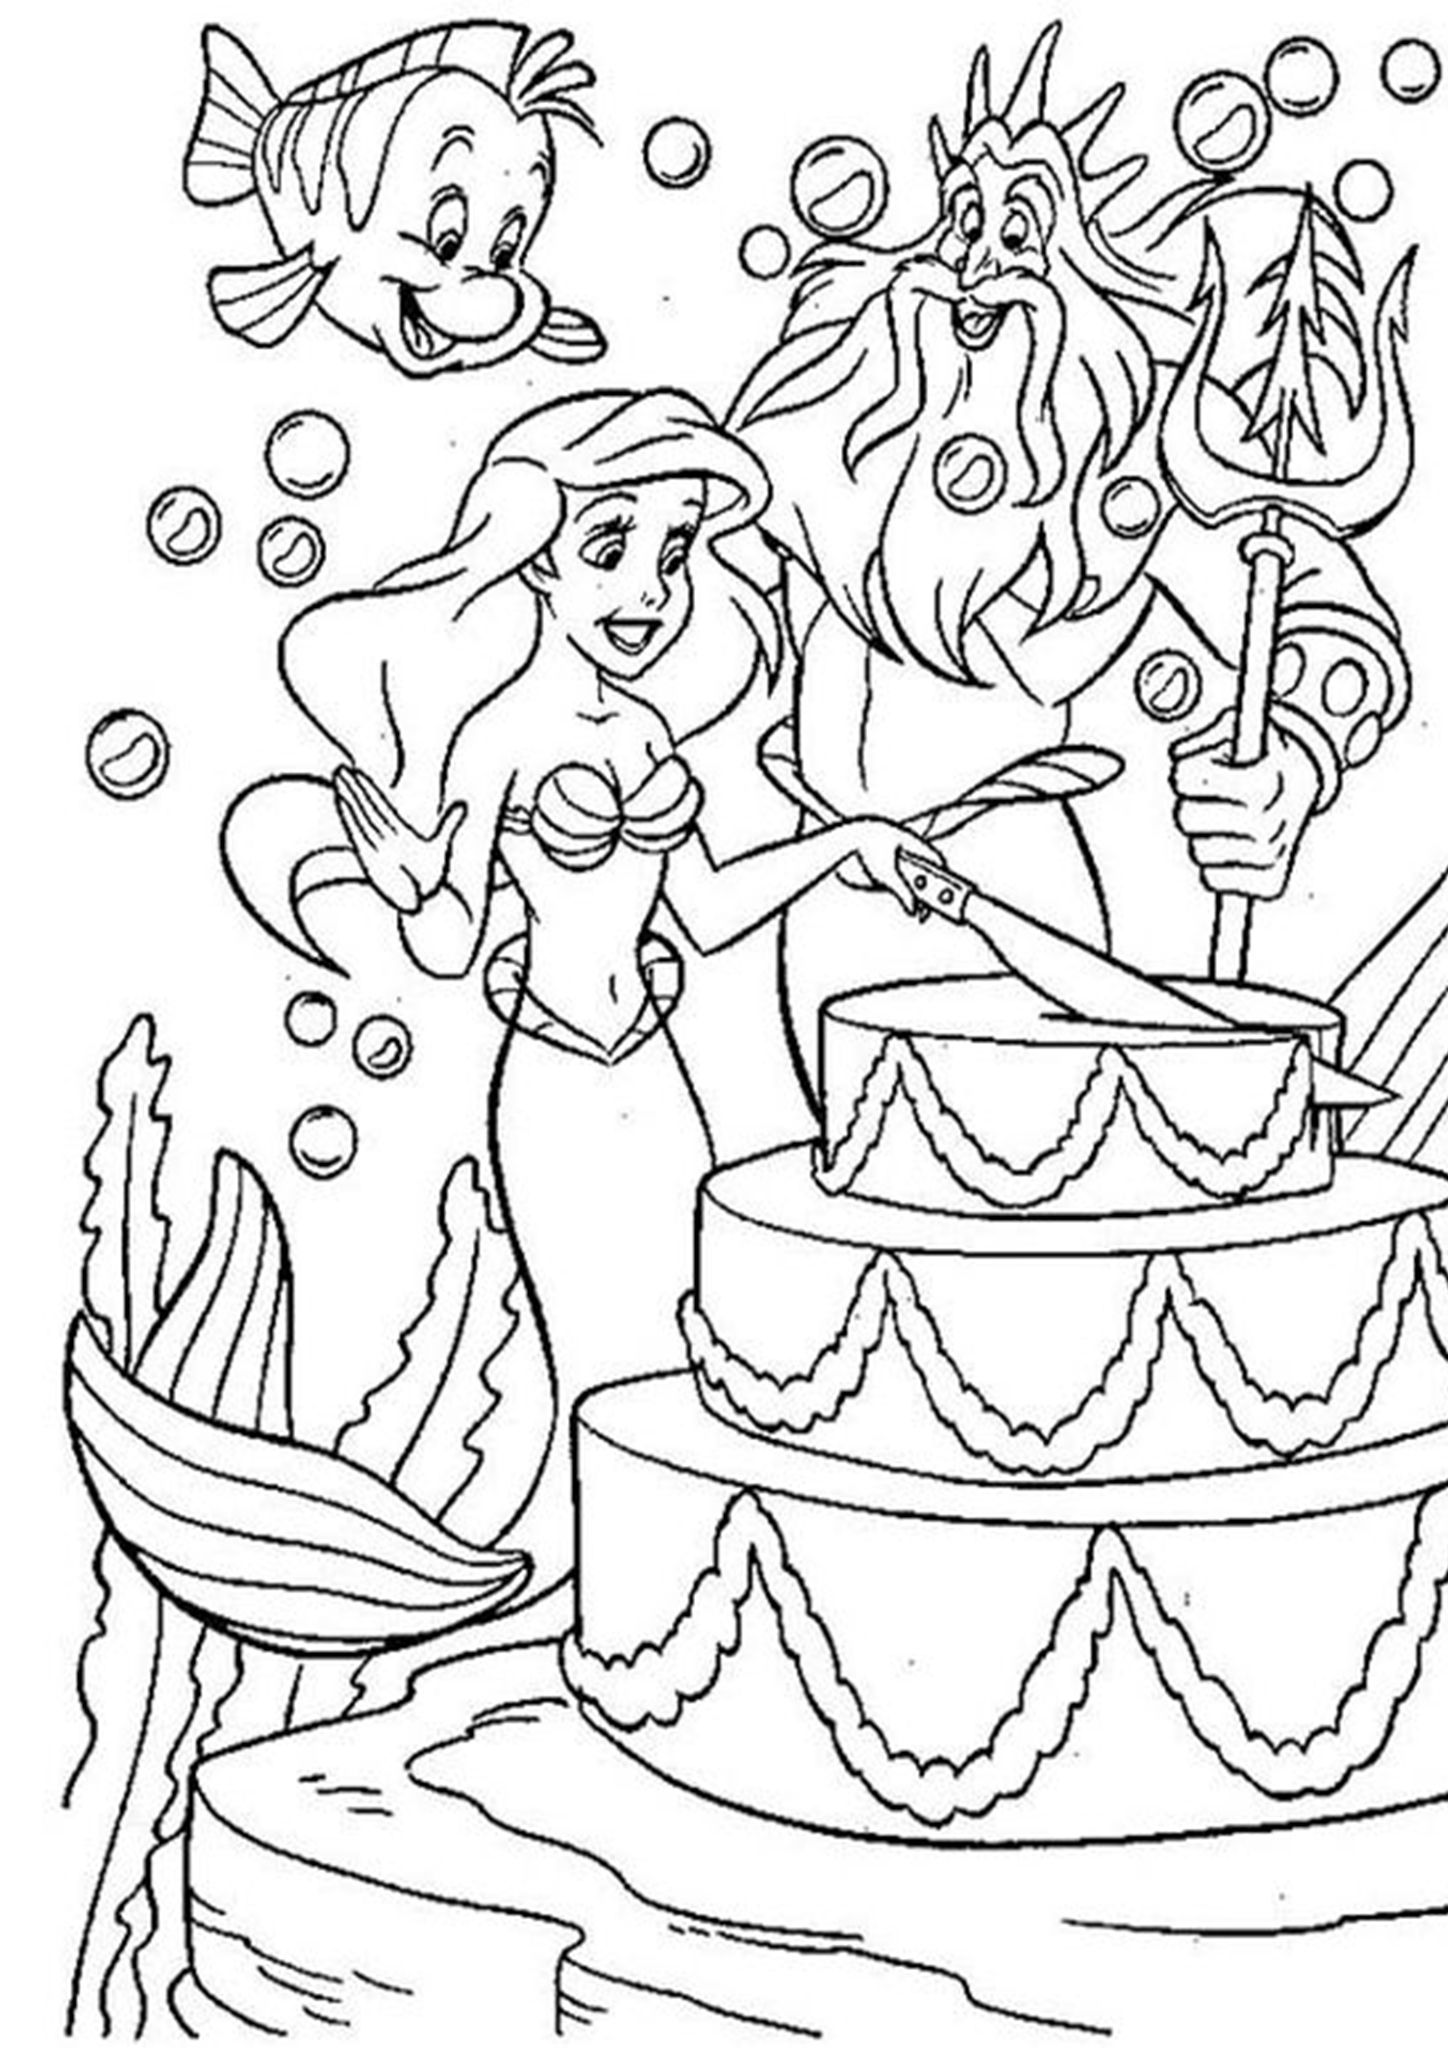 Coloring Page Little Mermaid Printable Pages Free The Ariel Coloring Pages Mermaid Coloring Book Mermaid Coloring Pages [ 1911 x 1940 Pixel ]